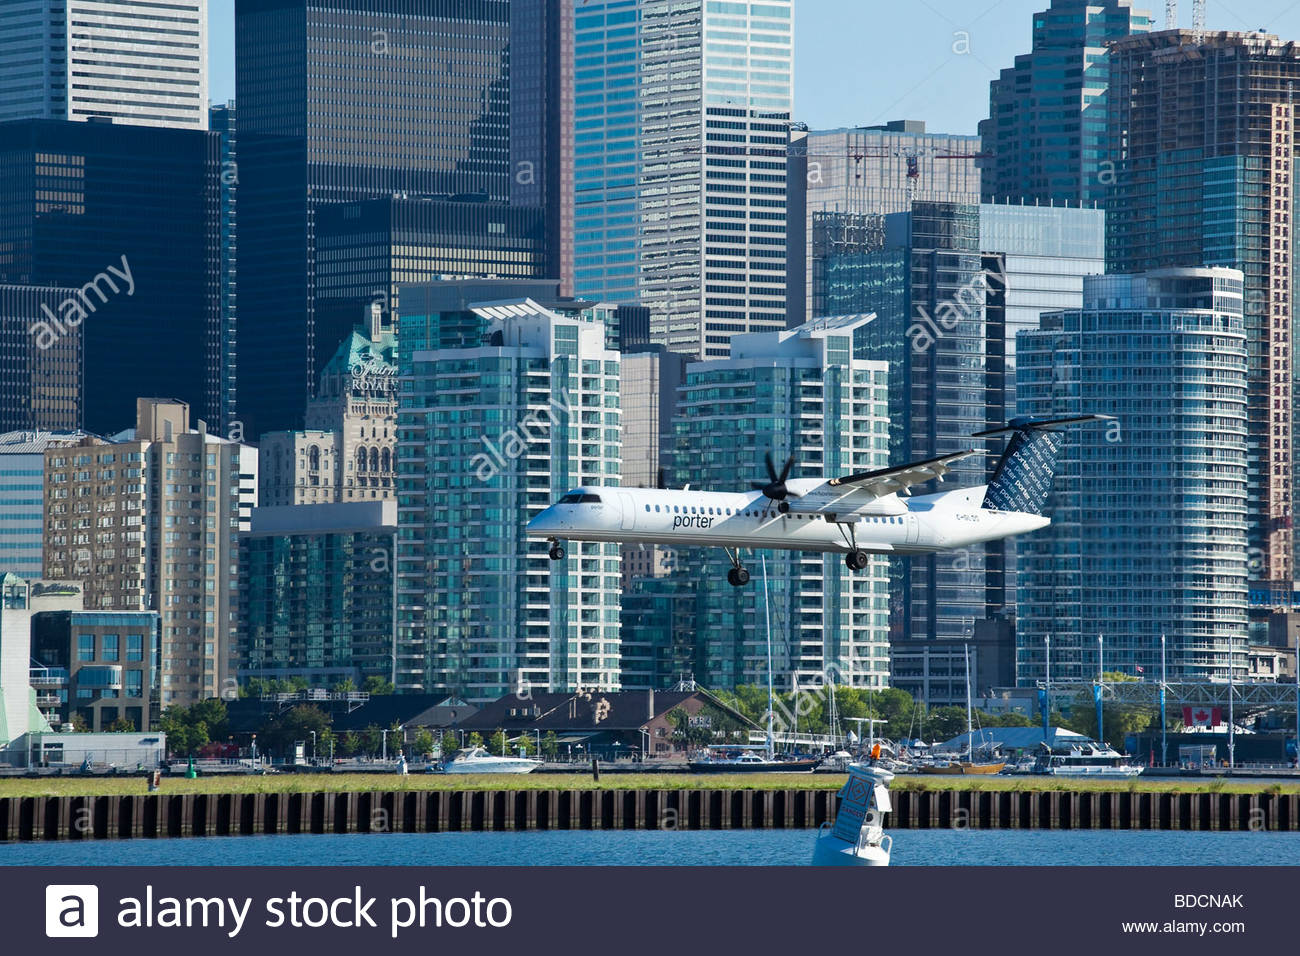 Bombardier Q400 aircraft from Porter airlines landing at Toronto City Centre Airport in Toronto Ontario Canada - Stock Image